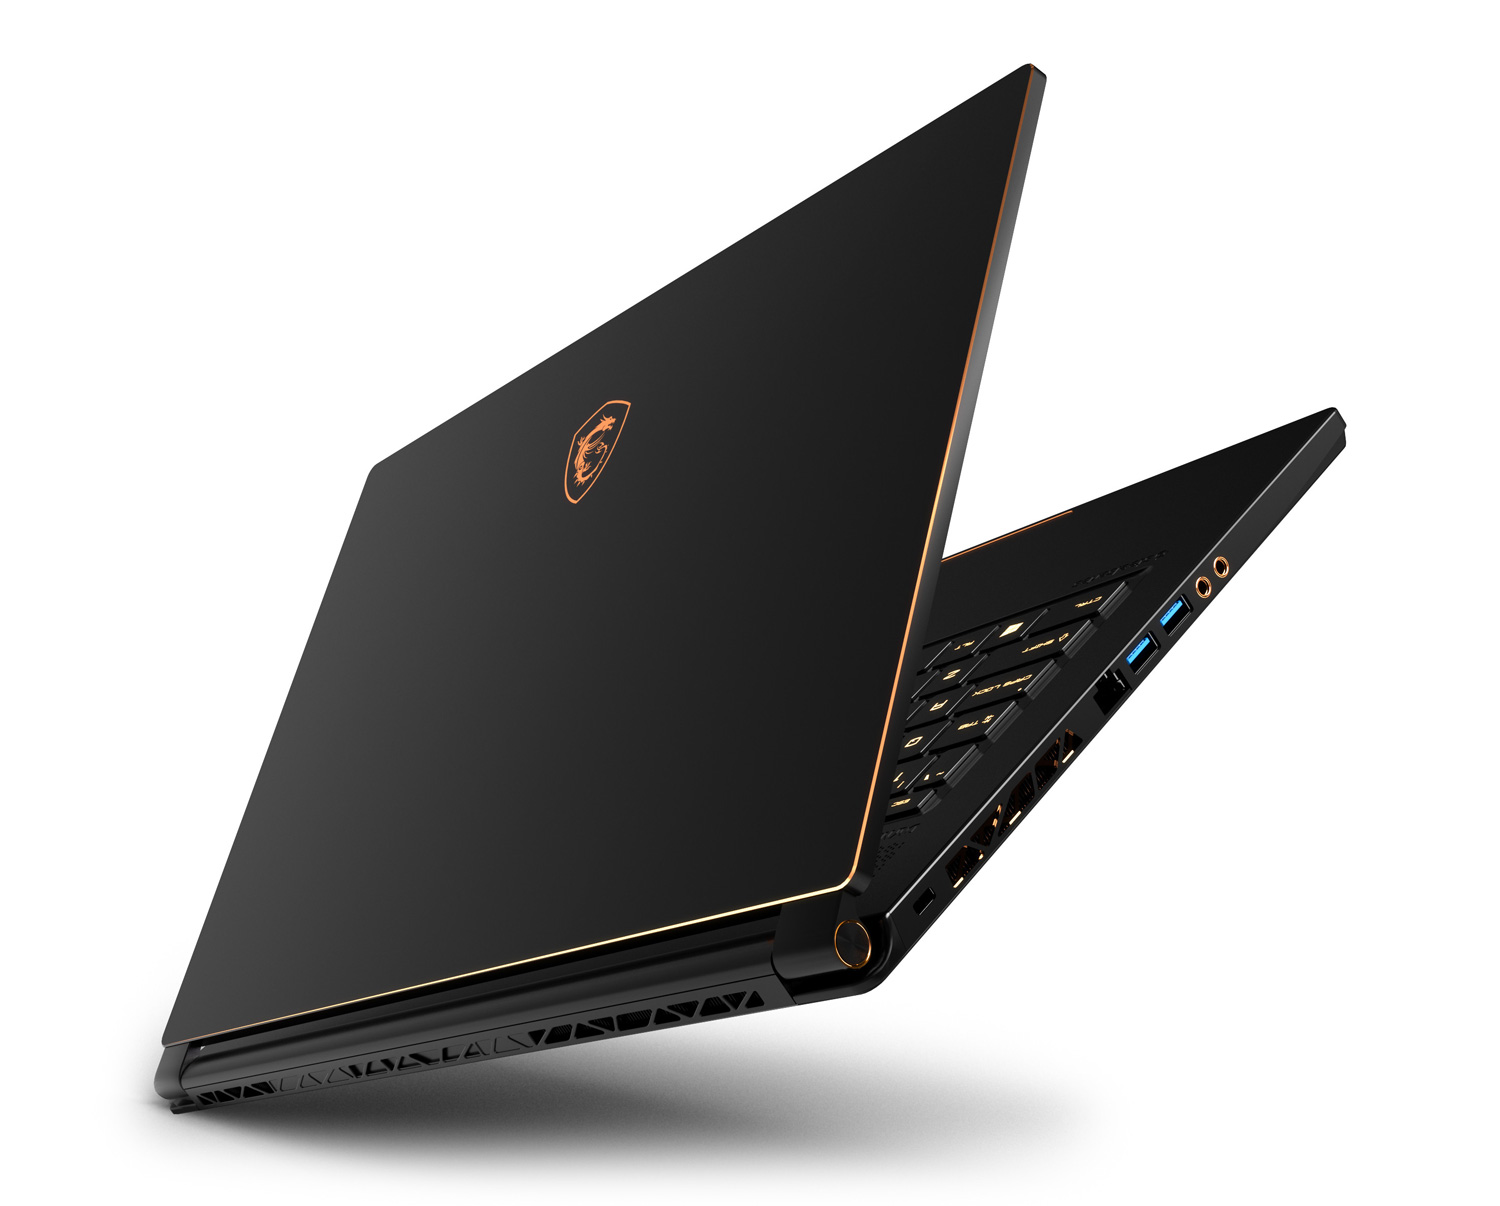 MSI GS65 9SD-433BE 3